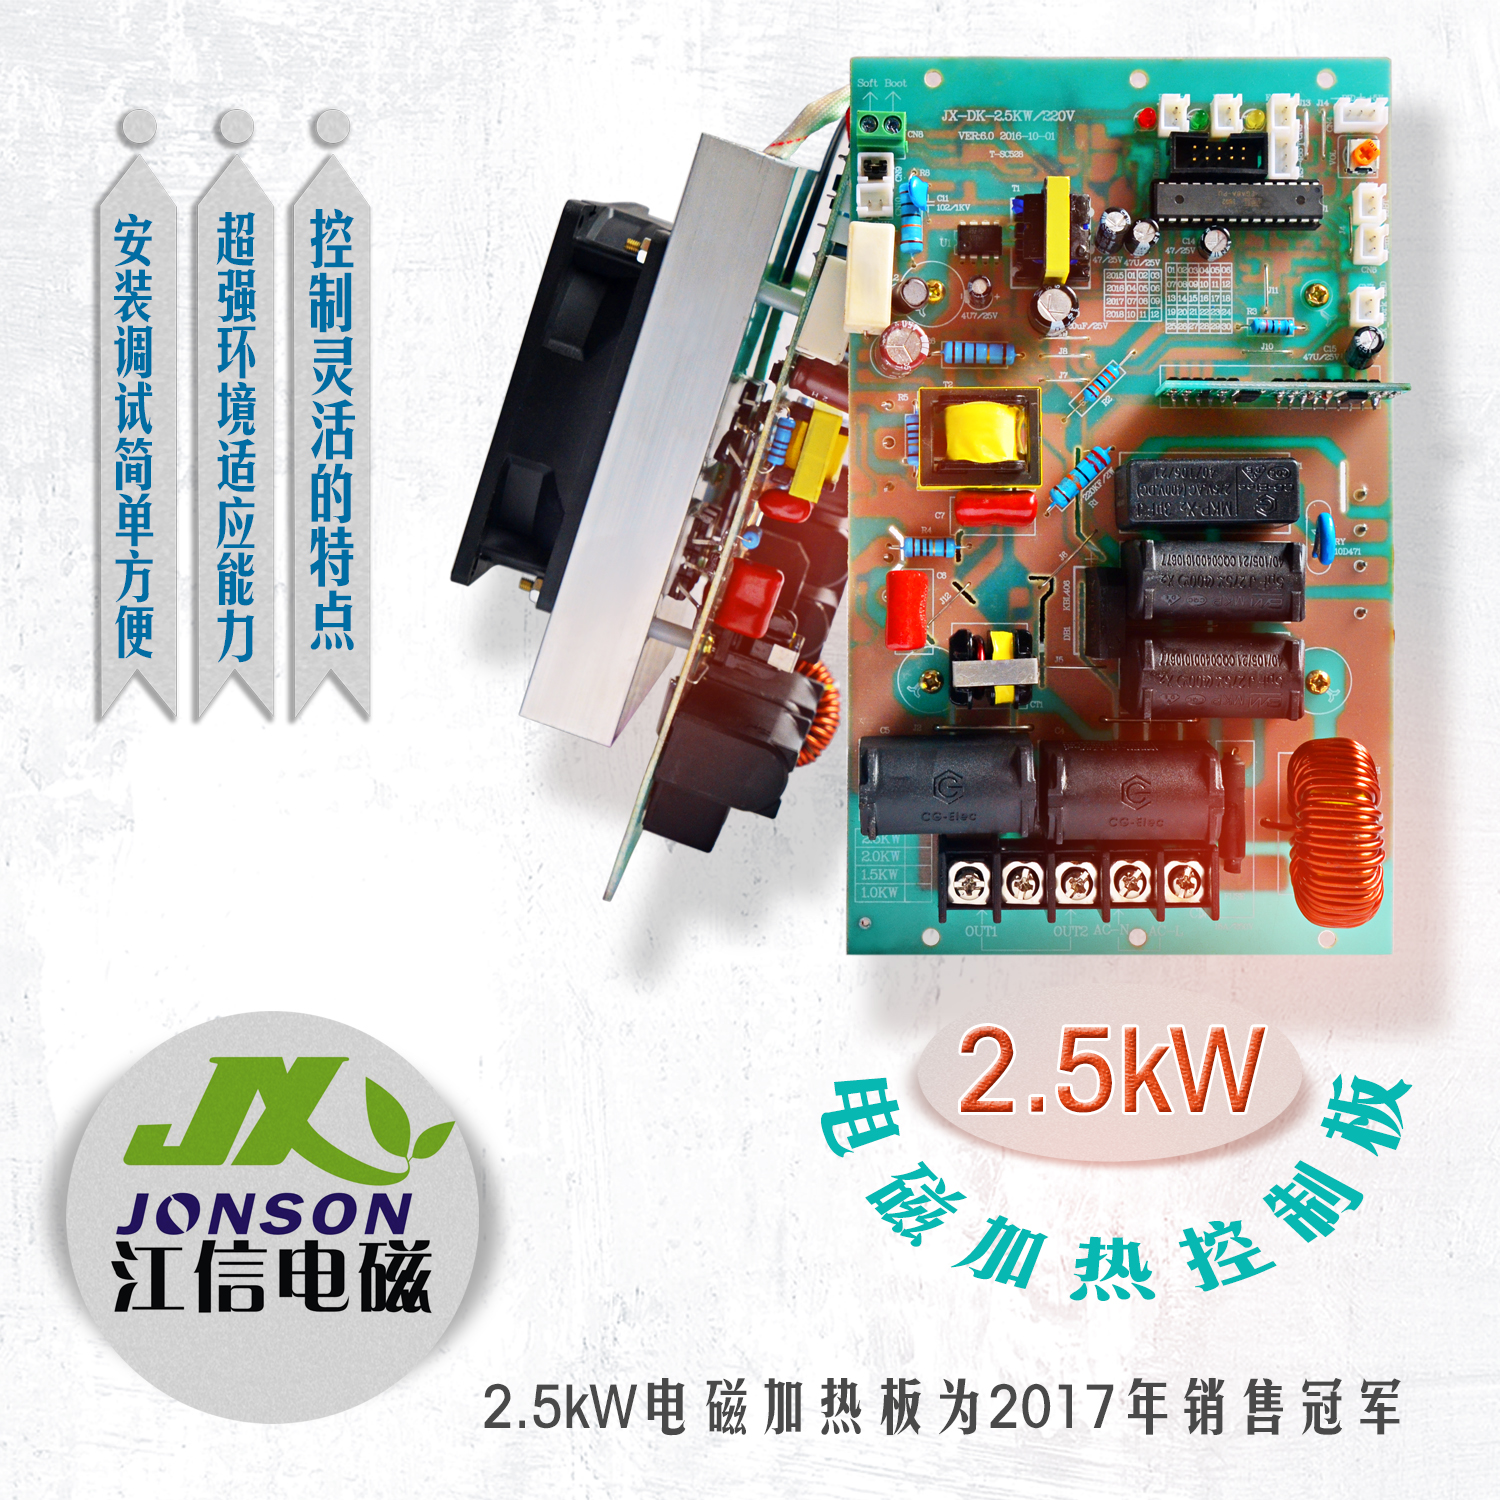 2.5KW Electromagnetic Heating Motherboard 2.5kW Electromagnetic Heating Control Board 2.5KW Induction Heating Control Panel electromagnetic heating equipment best 2500w diy induction heater